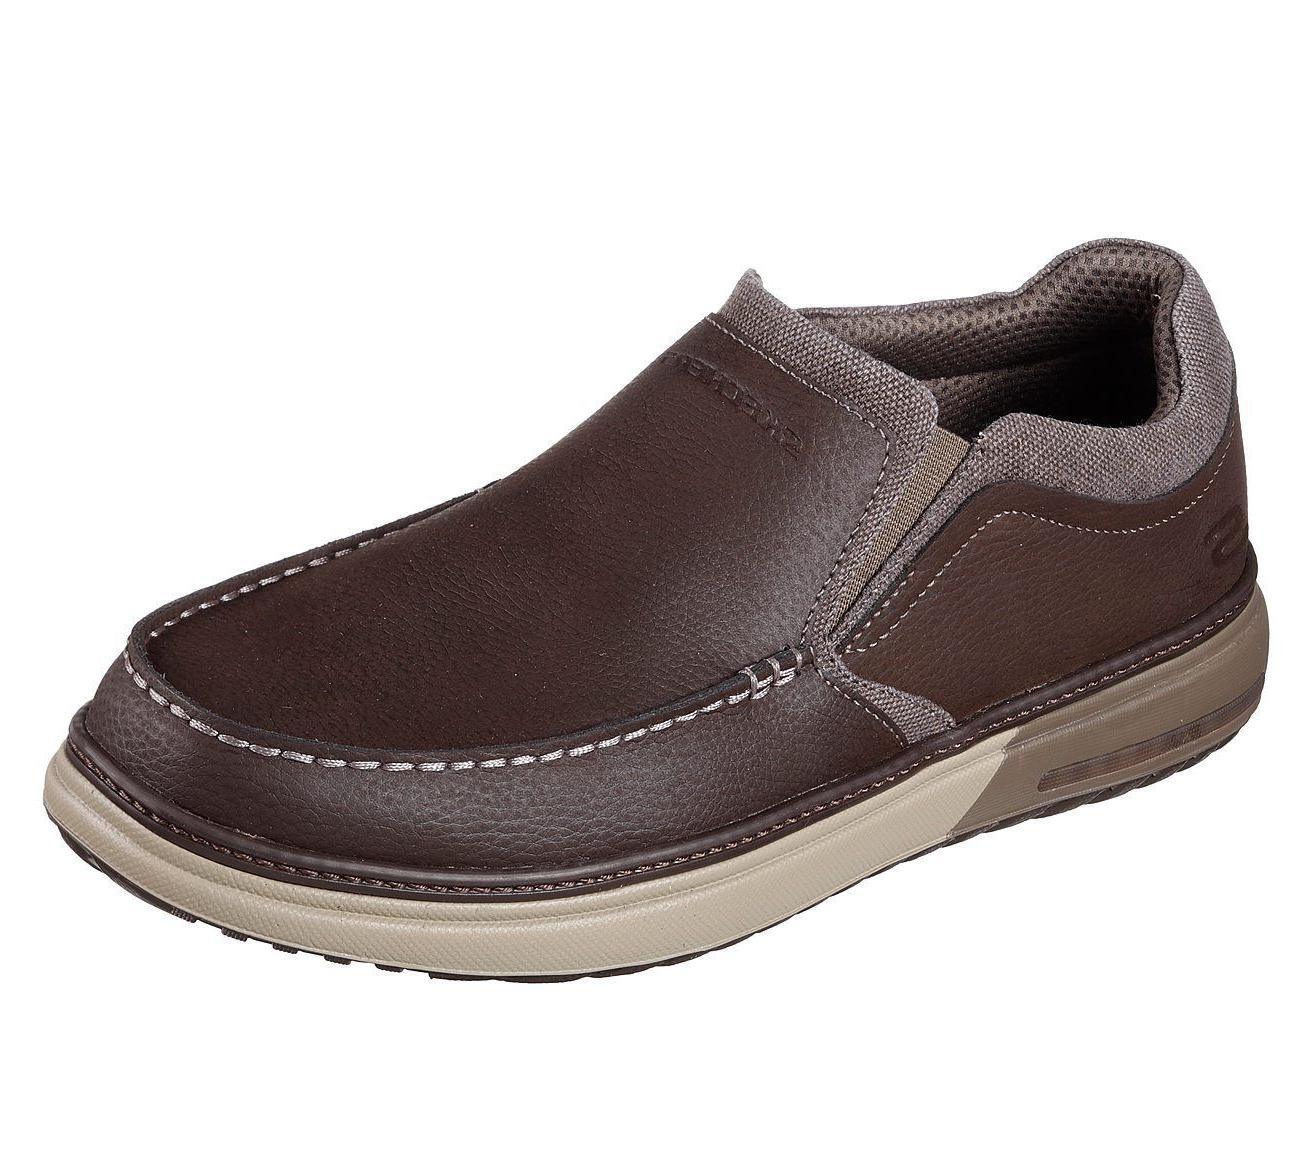 65366 Brown Skechers shoes Men Memory Foam Loafer Casual Com